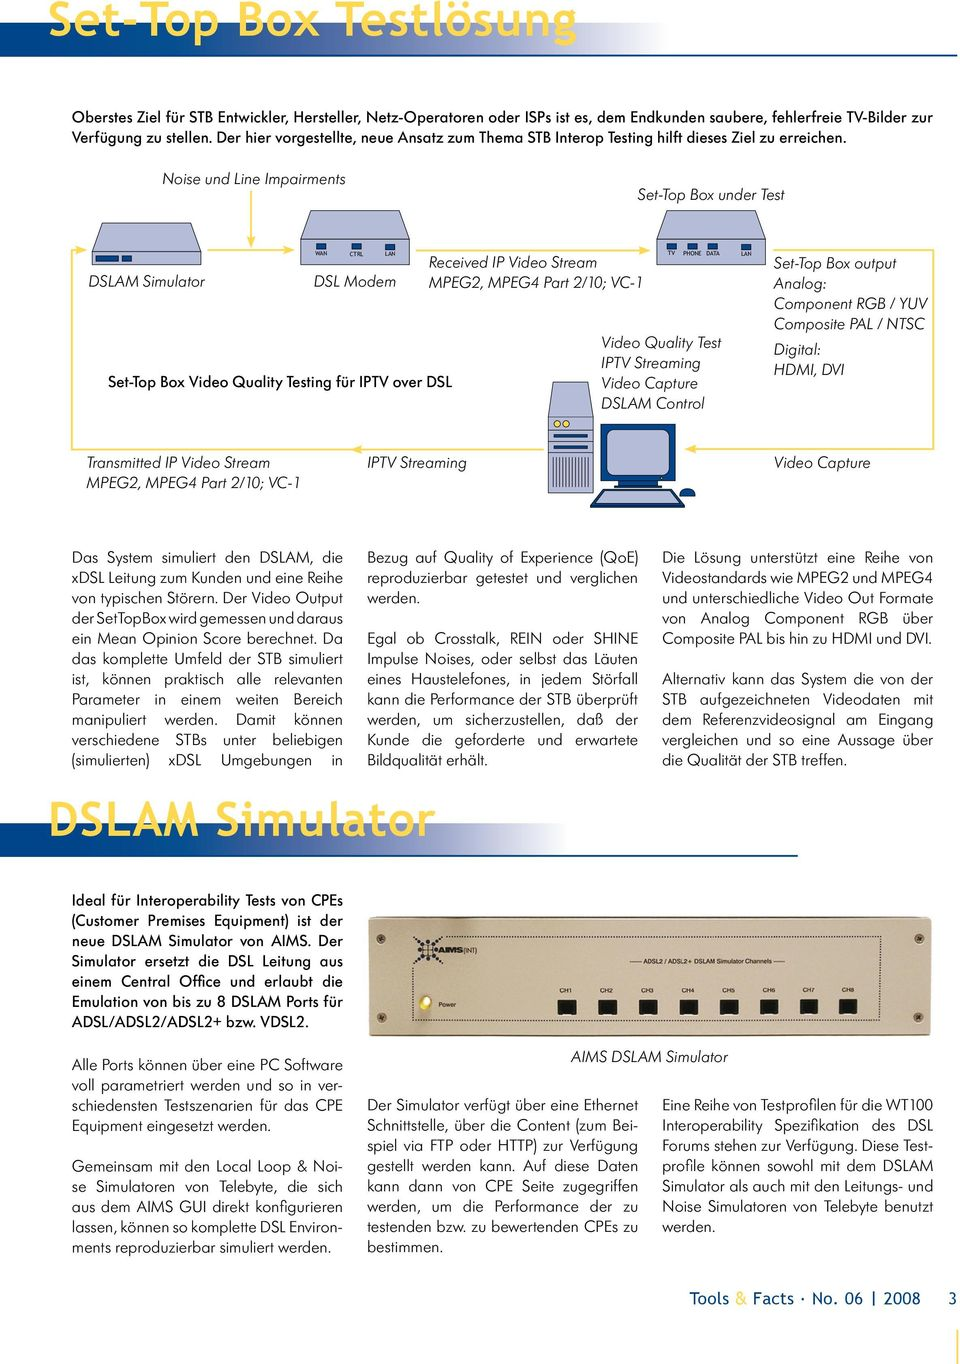 Noise und Line Impairments Set-Top Box under Test DSLAM Simulator WA N CTRL LAN DSL Modem Set-Top Box Video Quality Testing für IPTV over DSL Received IP Video Stream MPEG2, MPEG4 Part 2/10; VC-1 TV